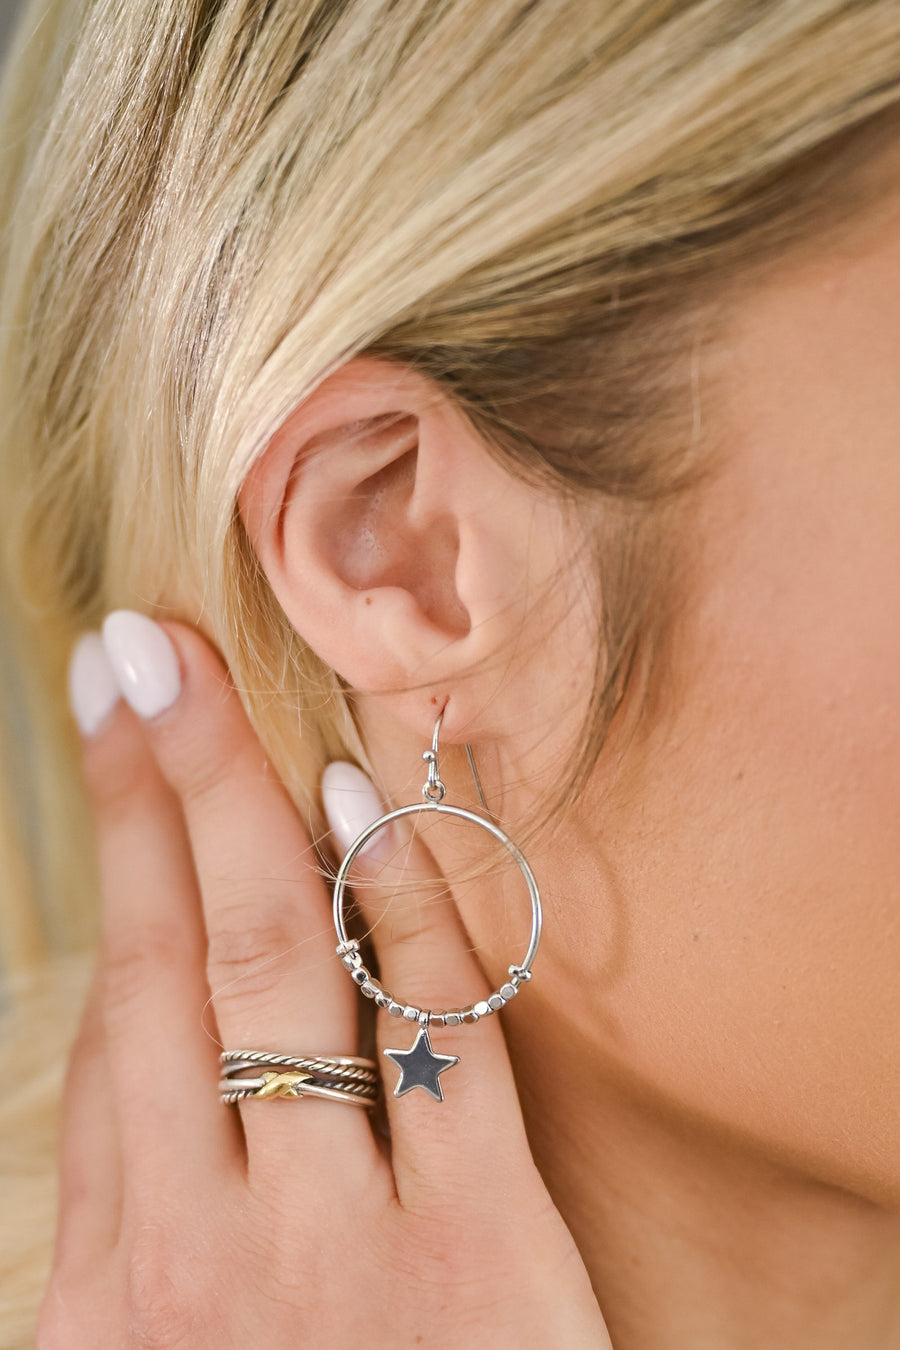 Oh My Stars Hoop Earrings - Silver womens trendy hoop earring with stars closet candy 1